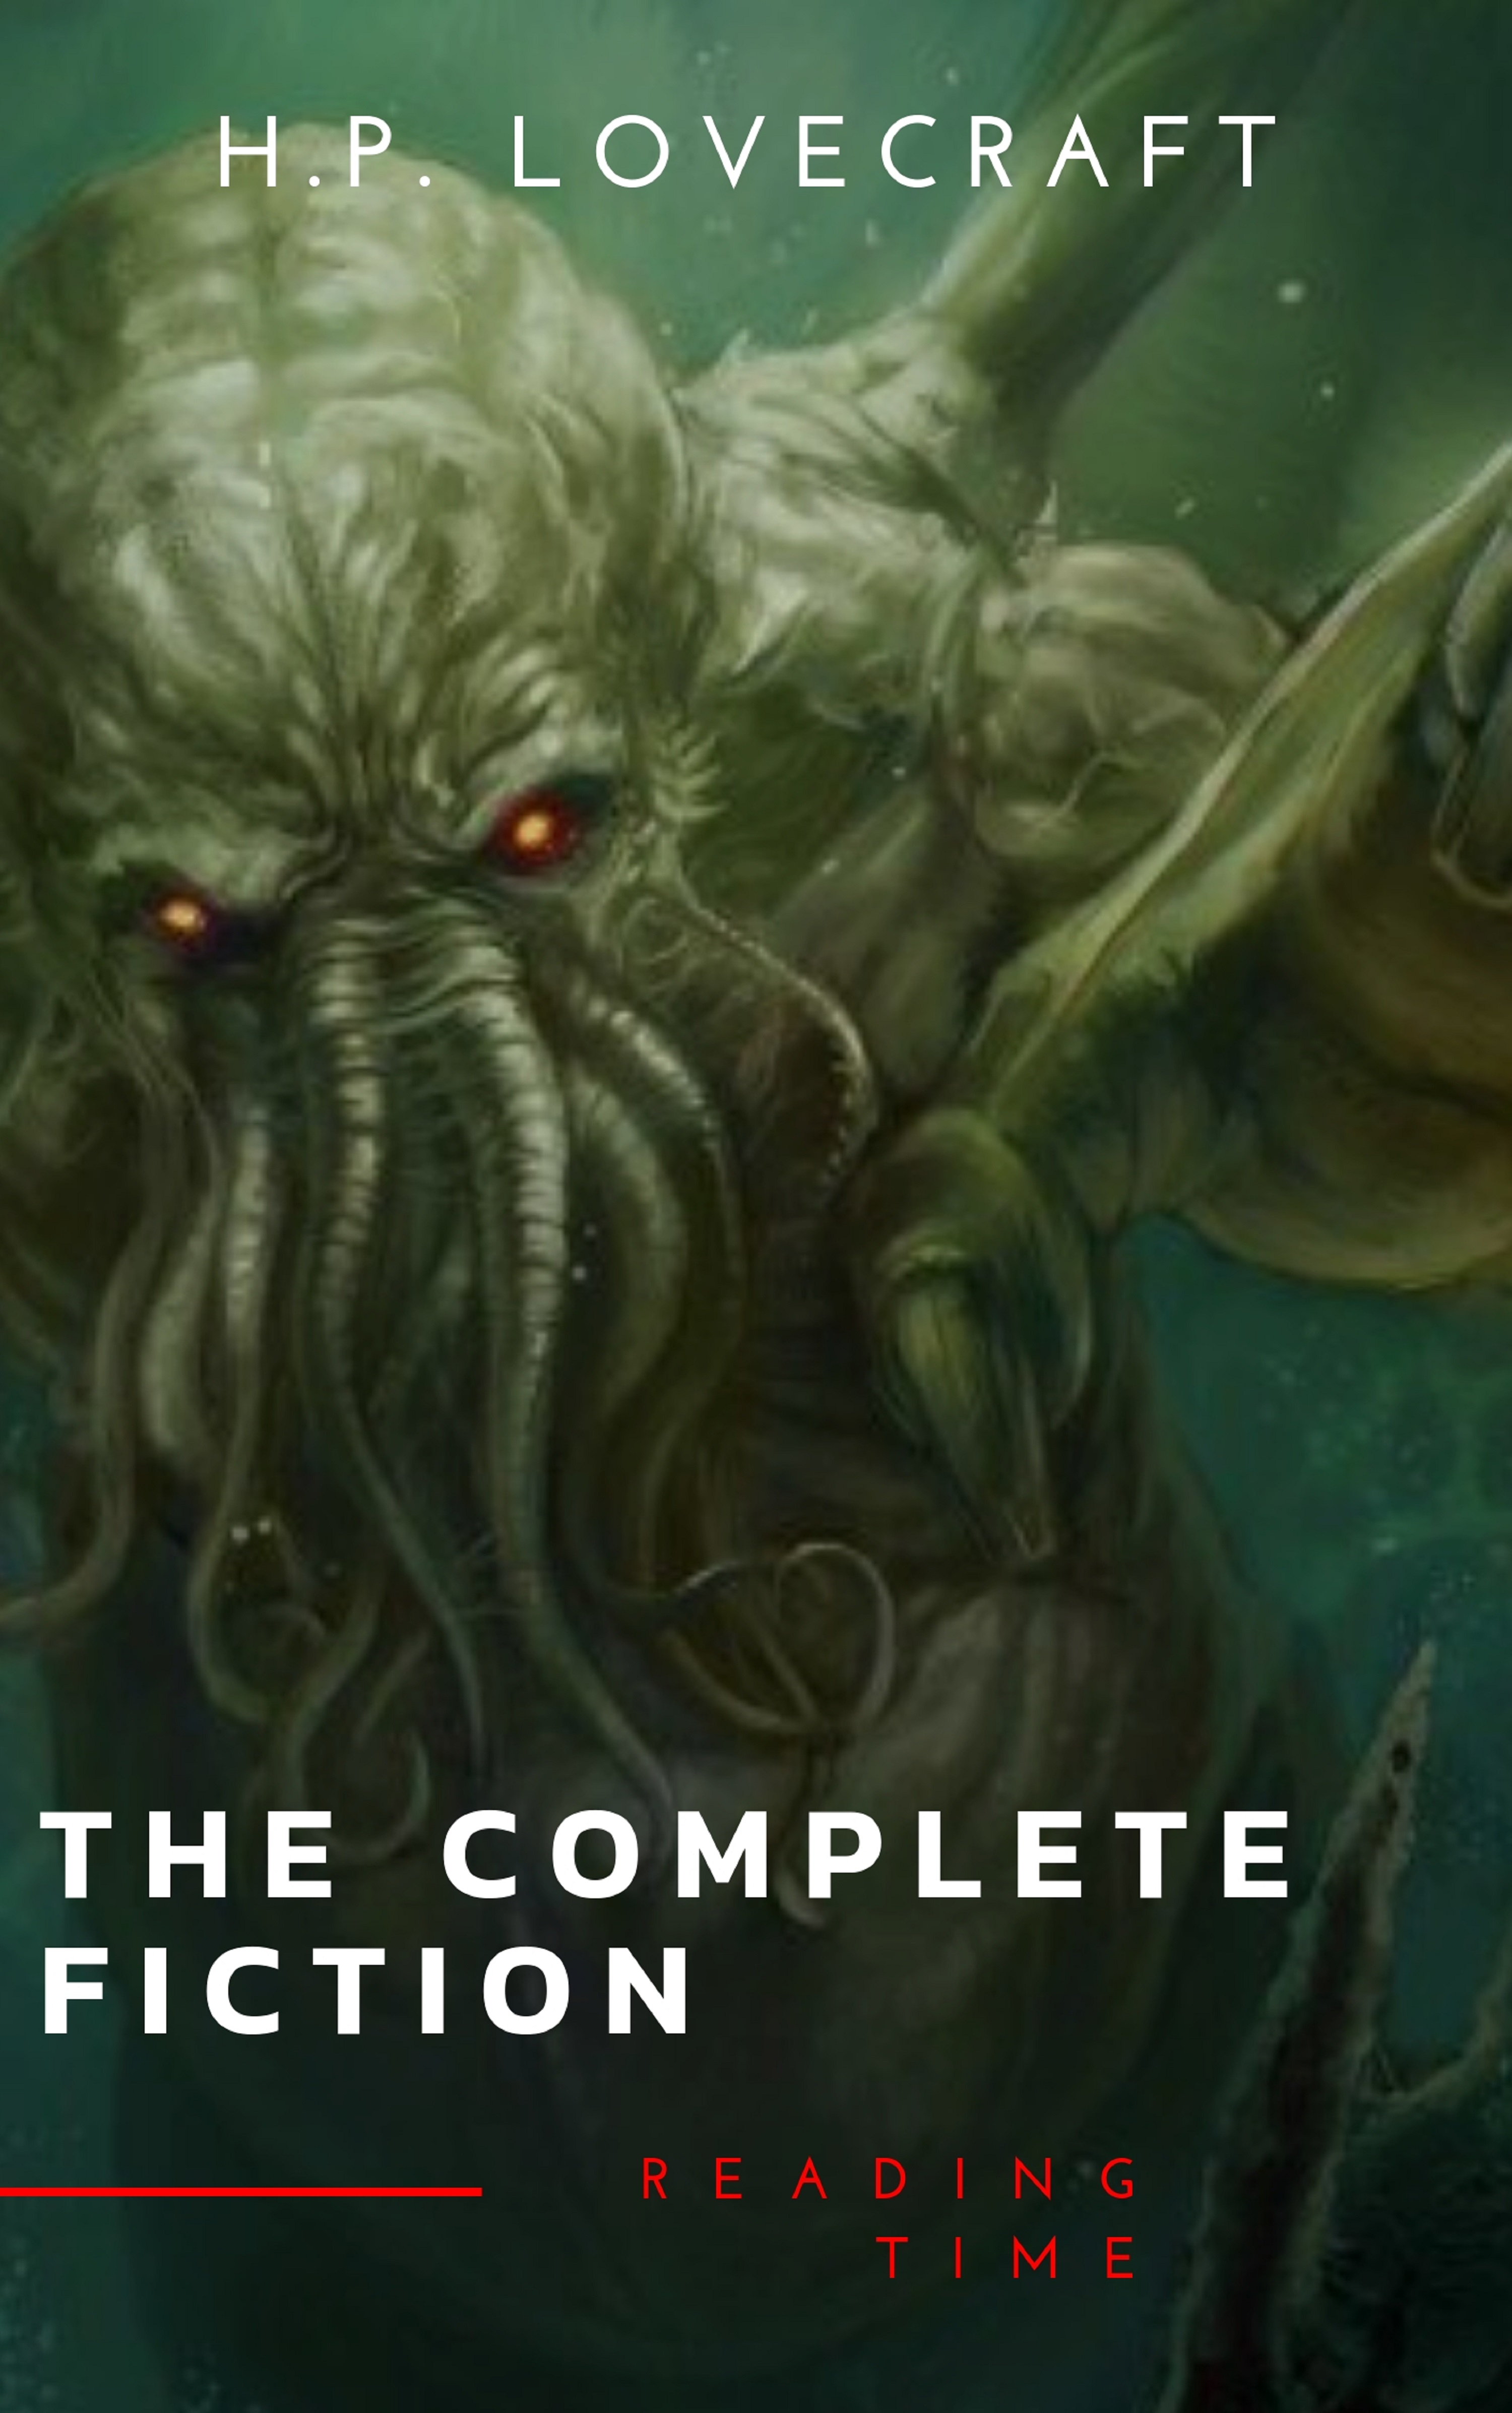 Говард Филлипс Лавкрафт The Complete Fiction of H. P. Lovecraft: At the Mountains of Madness, The Call of Cthulhu, The Case of Charles Dexter Ward, The Shadow over Innsmouth, ...